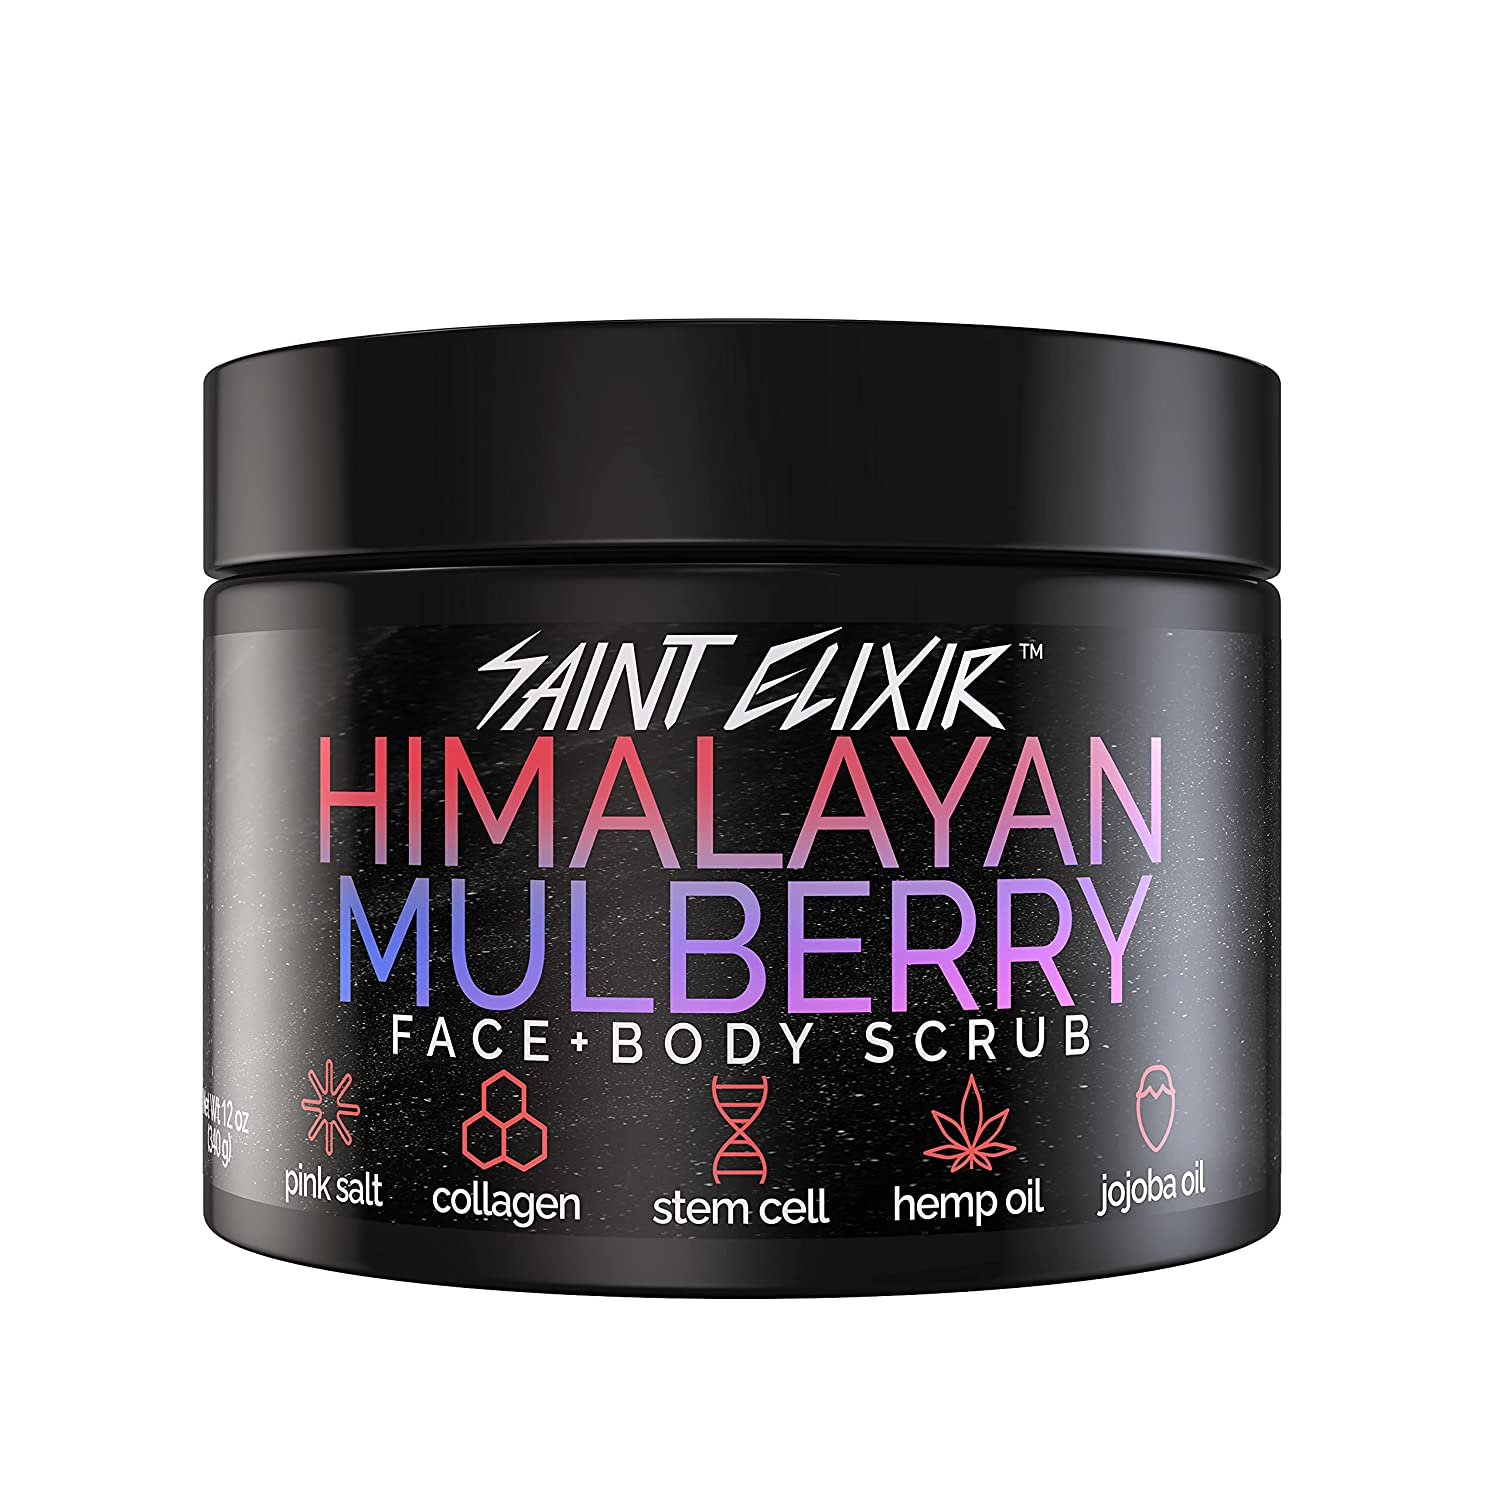 SAINT ELIXIR Himalayan Mulberry Salt Scrub with Collagen, Apple Stem Cell, Hemp Seed Oil, Jojoba Oil for Face and Body Natural Hydrating Detoxifying Exfoliator Cleansing Gender Neutral Acne Blackheads Dark Spots Wrinkles Pore Size 12 oz